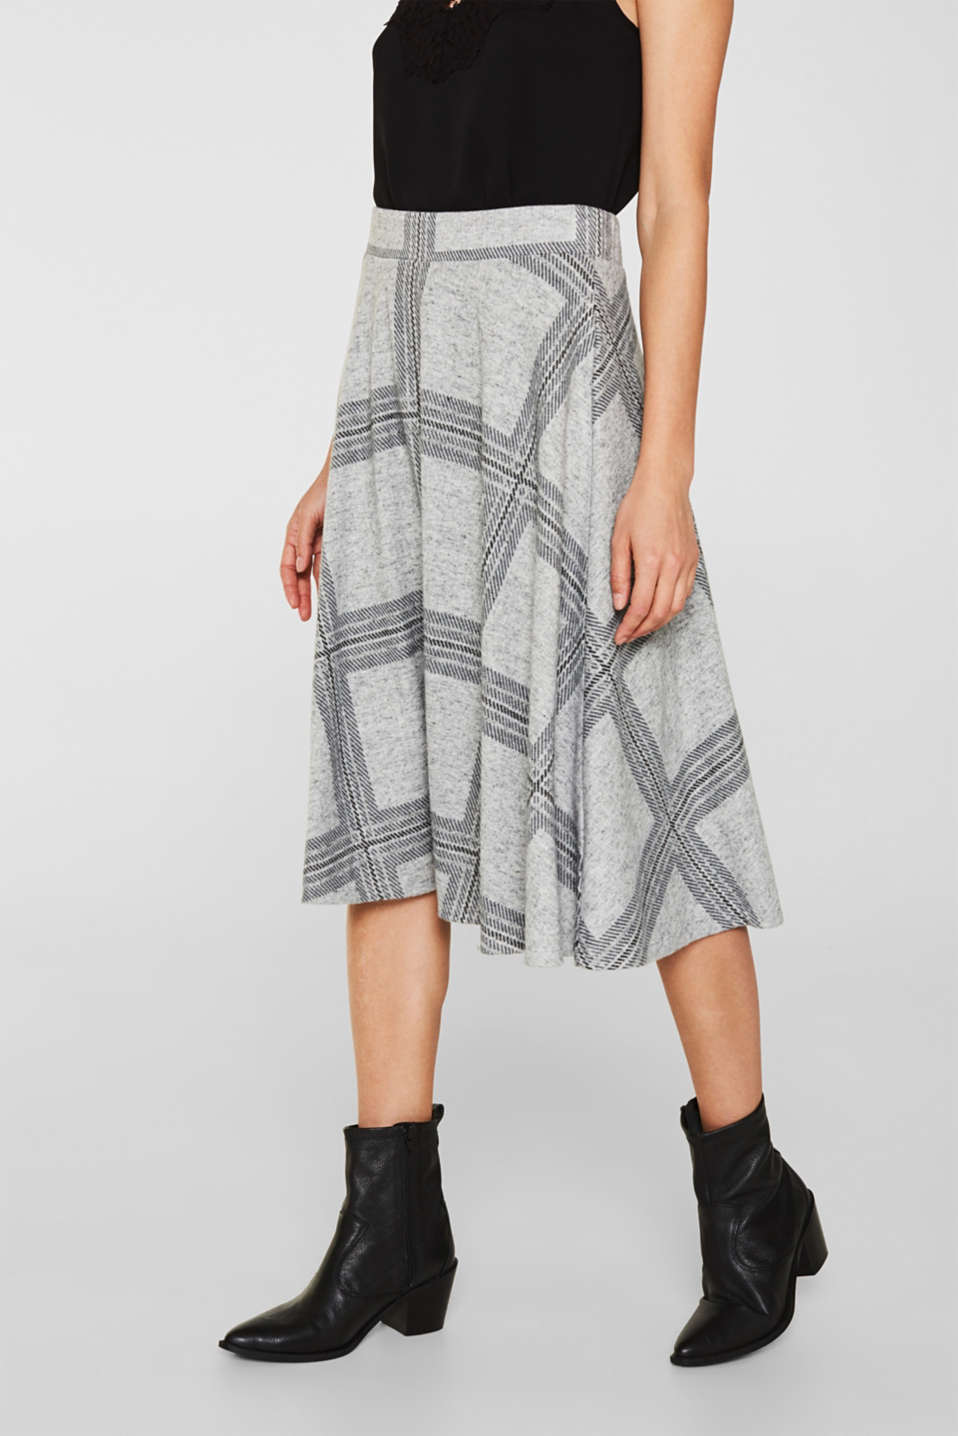 Fluffy jersey skirt with a check pattern, LIGHT GREY 5, detail image number 7